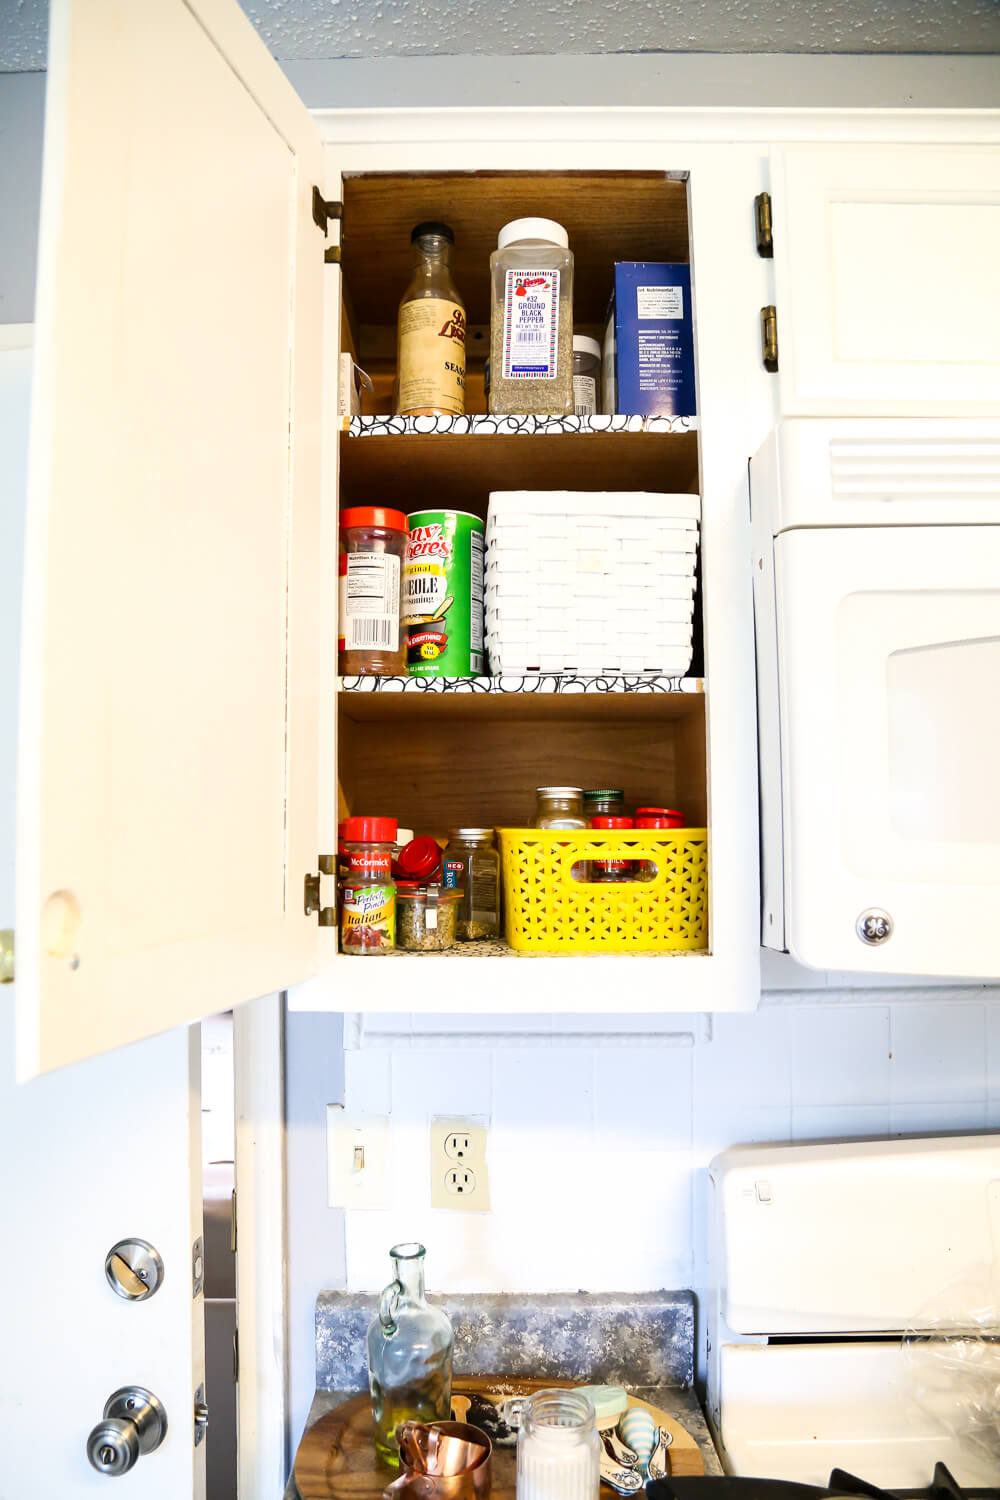 A quick and simple solution for keeping your spices organized. Great ideas for organization in the kitchen